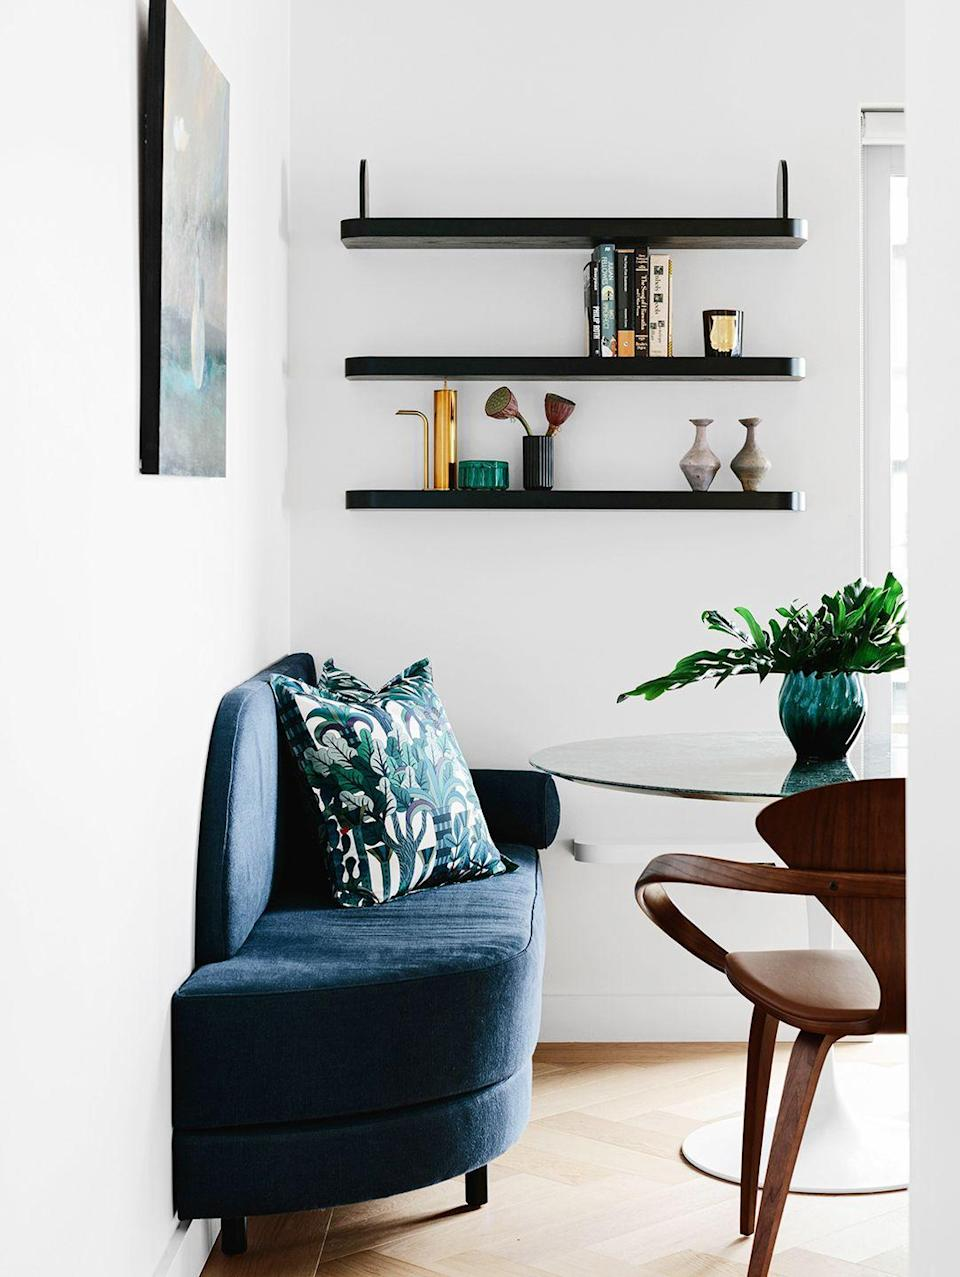 """<p>In smaller spaces, where a tulip table is all you can squeeze in, choose fun accent chairs and consider a built-in bench. A casual gallery wall or statement-making floating shelves displaying decor will spice things up without taking up any precious square footage. This breakfast nook designed by<a href=""""https://arentpyke.com/"""" rel=""""nofollow noopener"""" target=""""_blank"""" data-ylk=""""slk:Arent & Pyke"""" class=""""link rapid-noclick-resp""""> Arent & Pyke</a> proves it.</p>"""